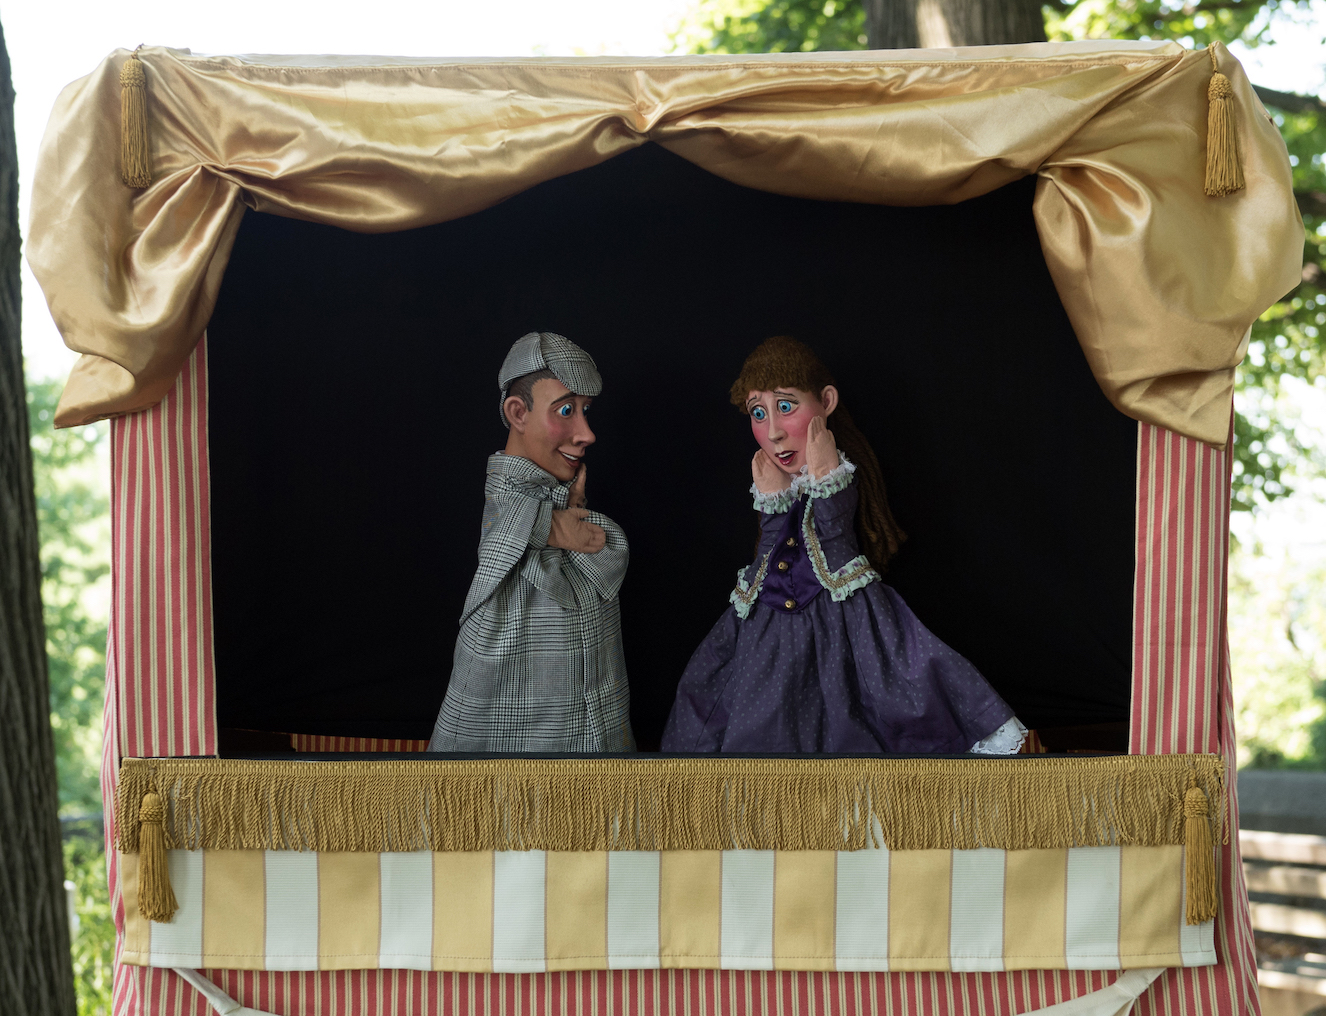 two puppets in a puppet theatre